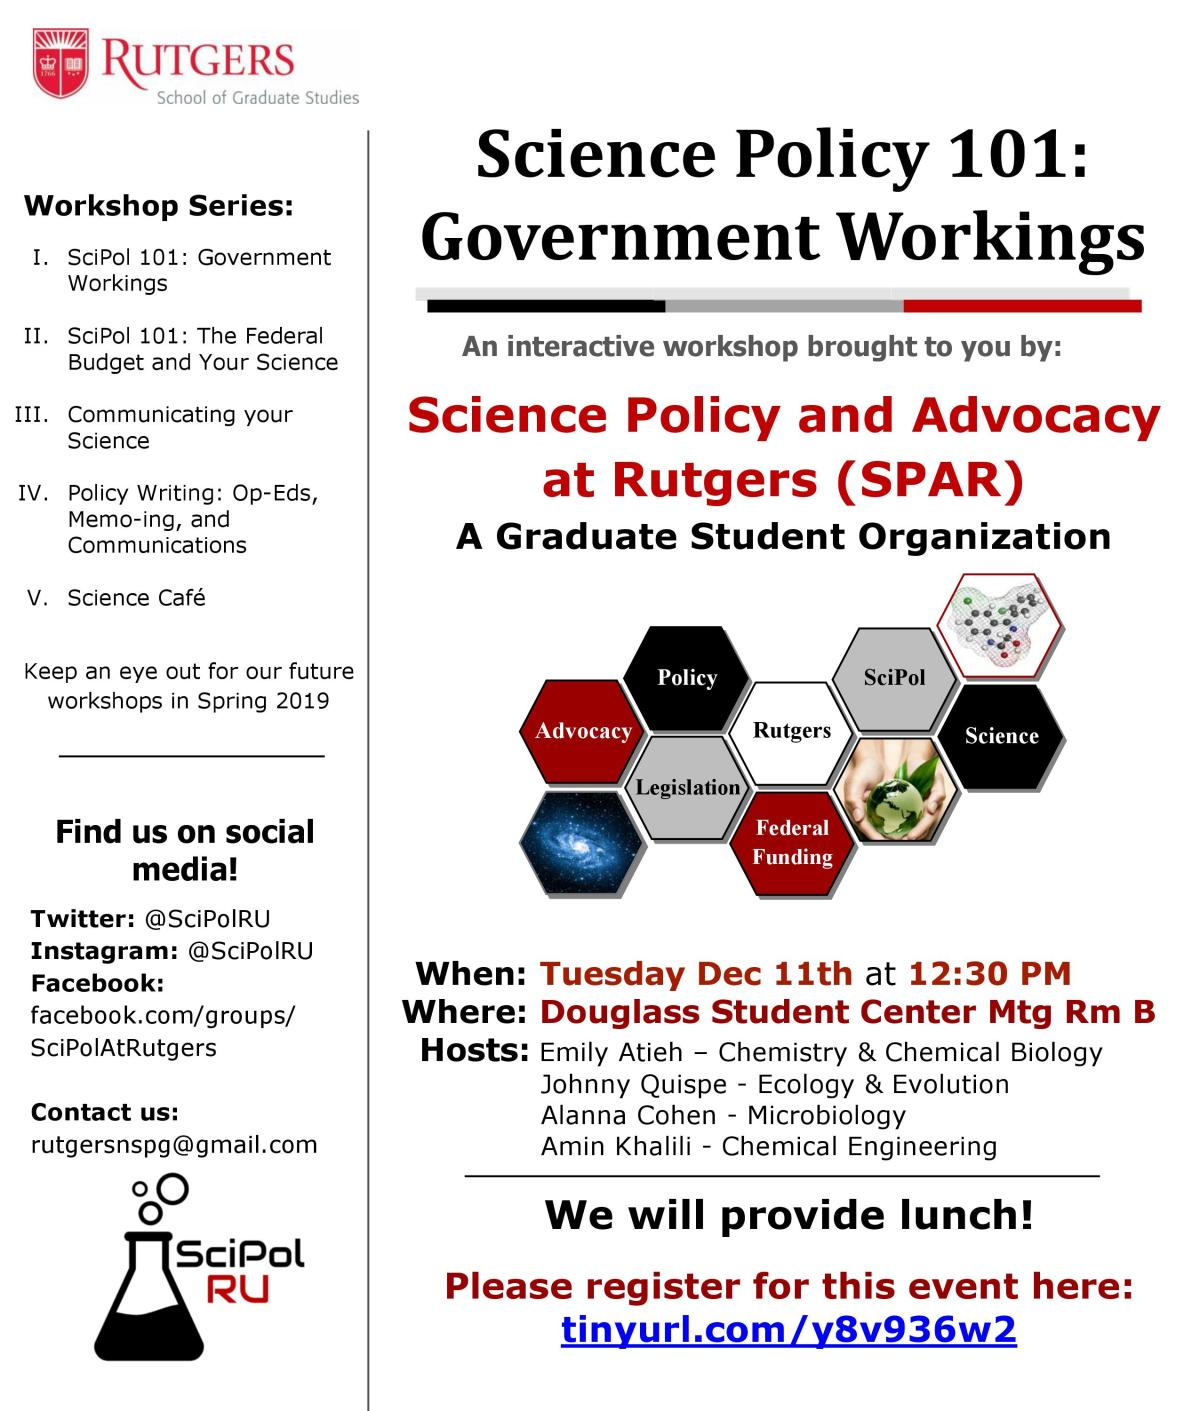 SciPol 101 Workshop: GovernmentWorkings